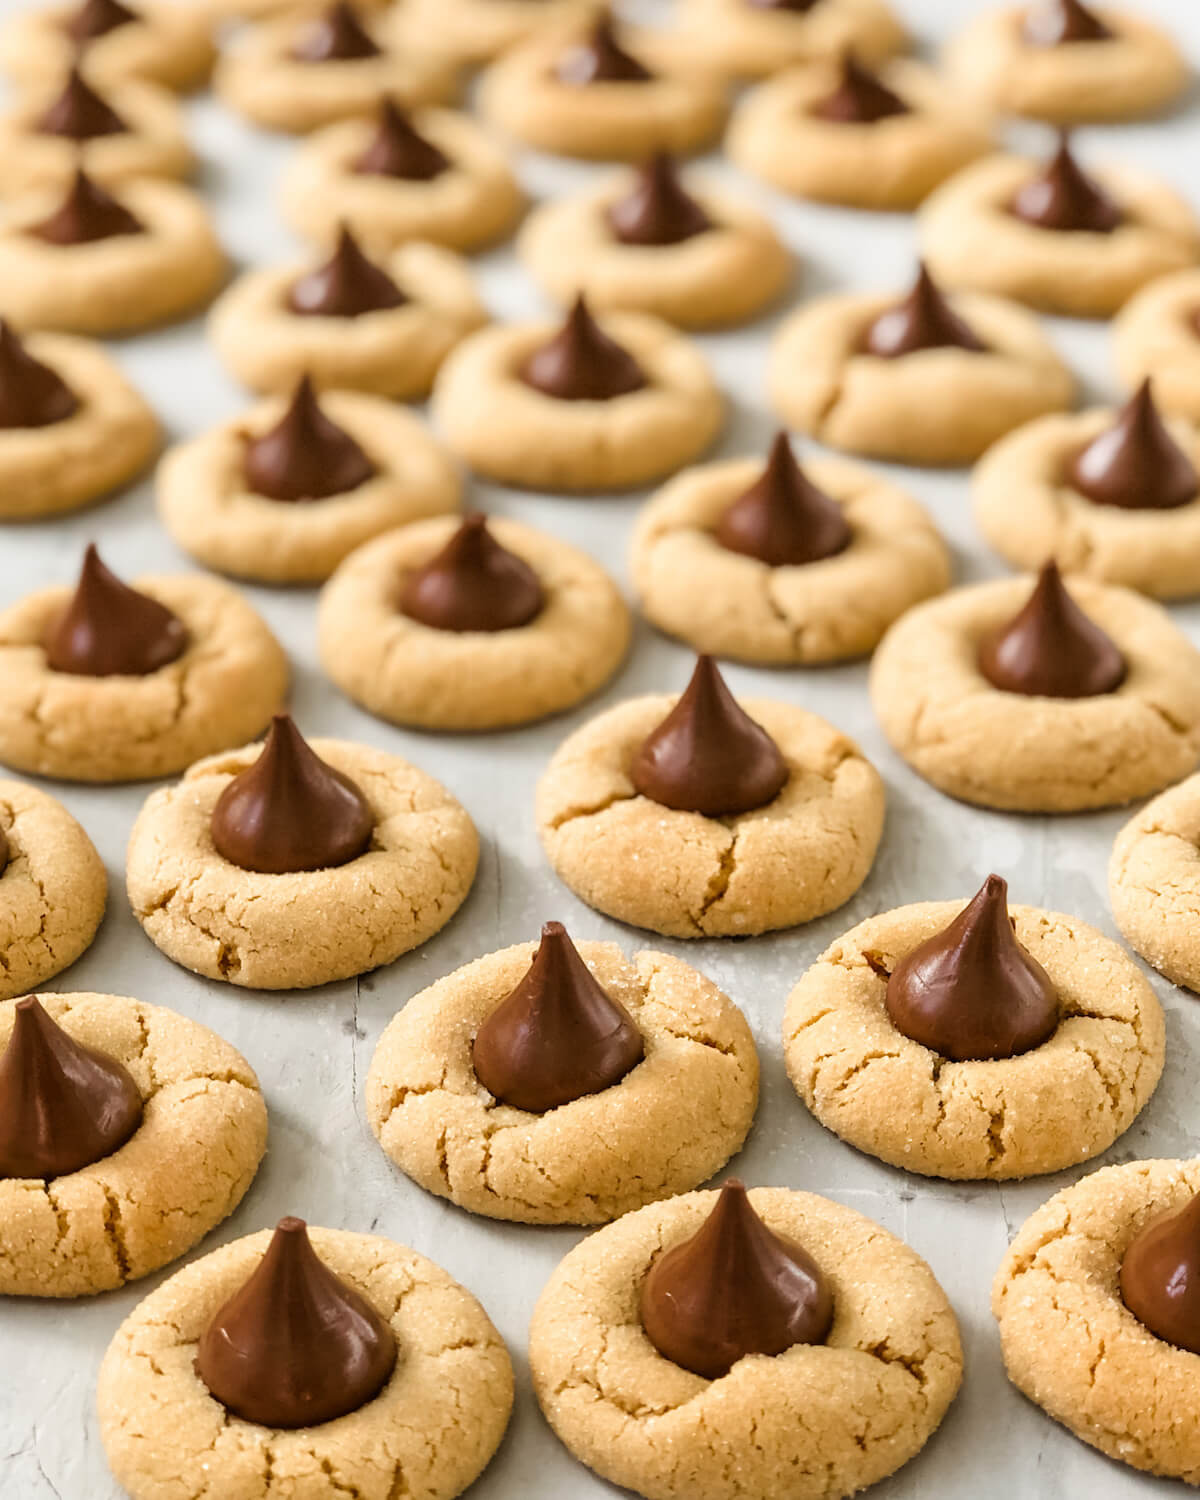 sea of peanut butter blossoms with chocolate kisses